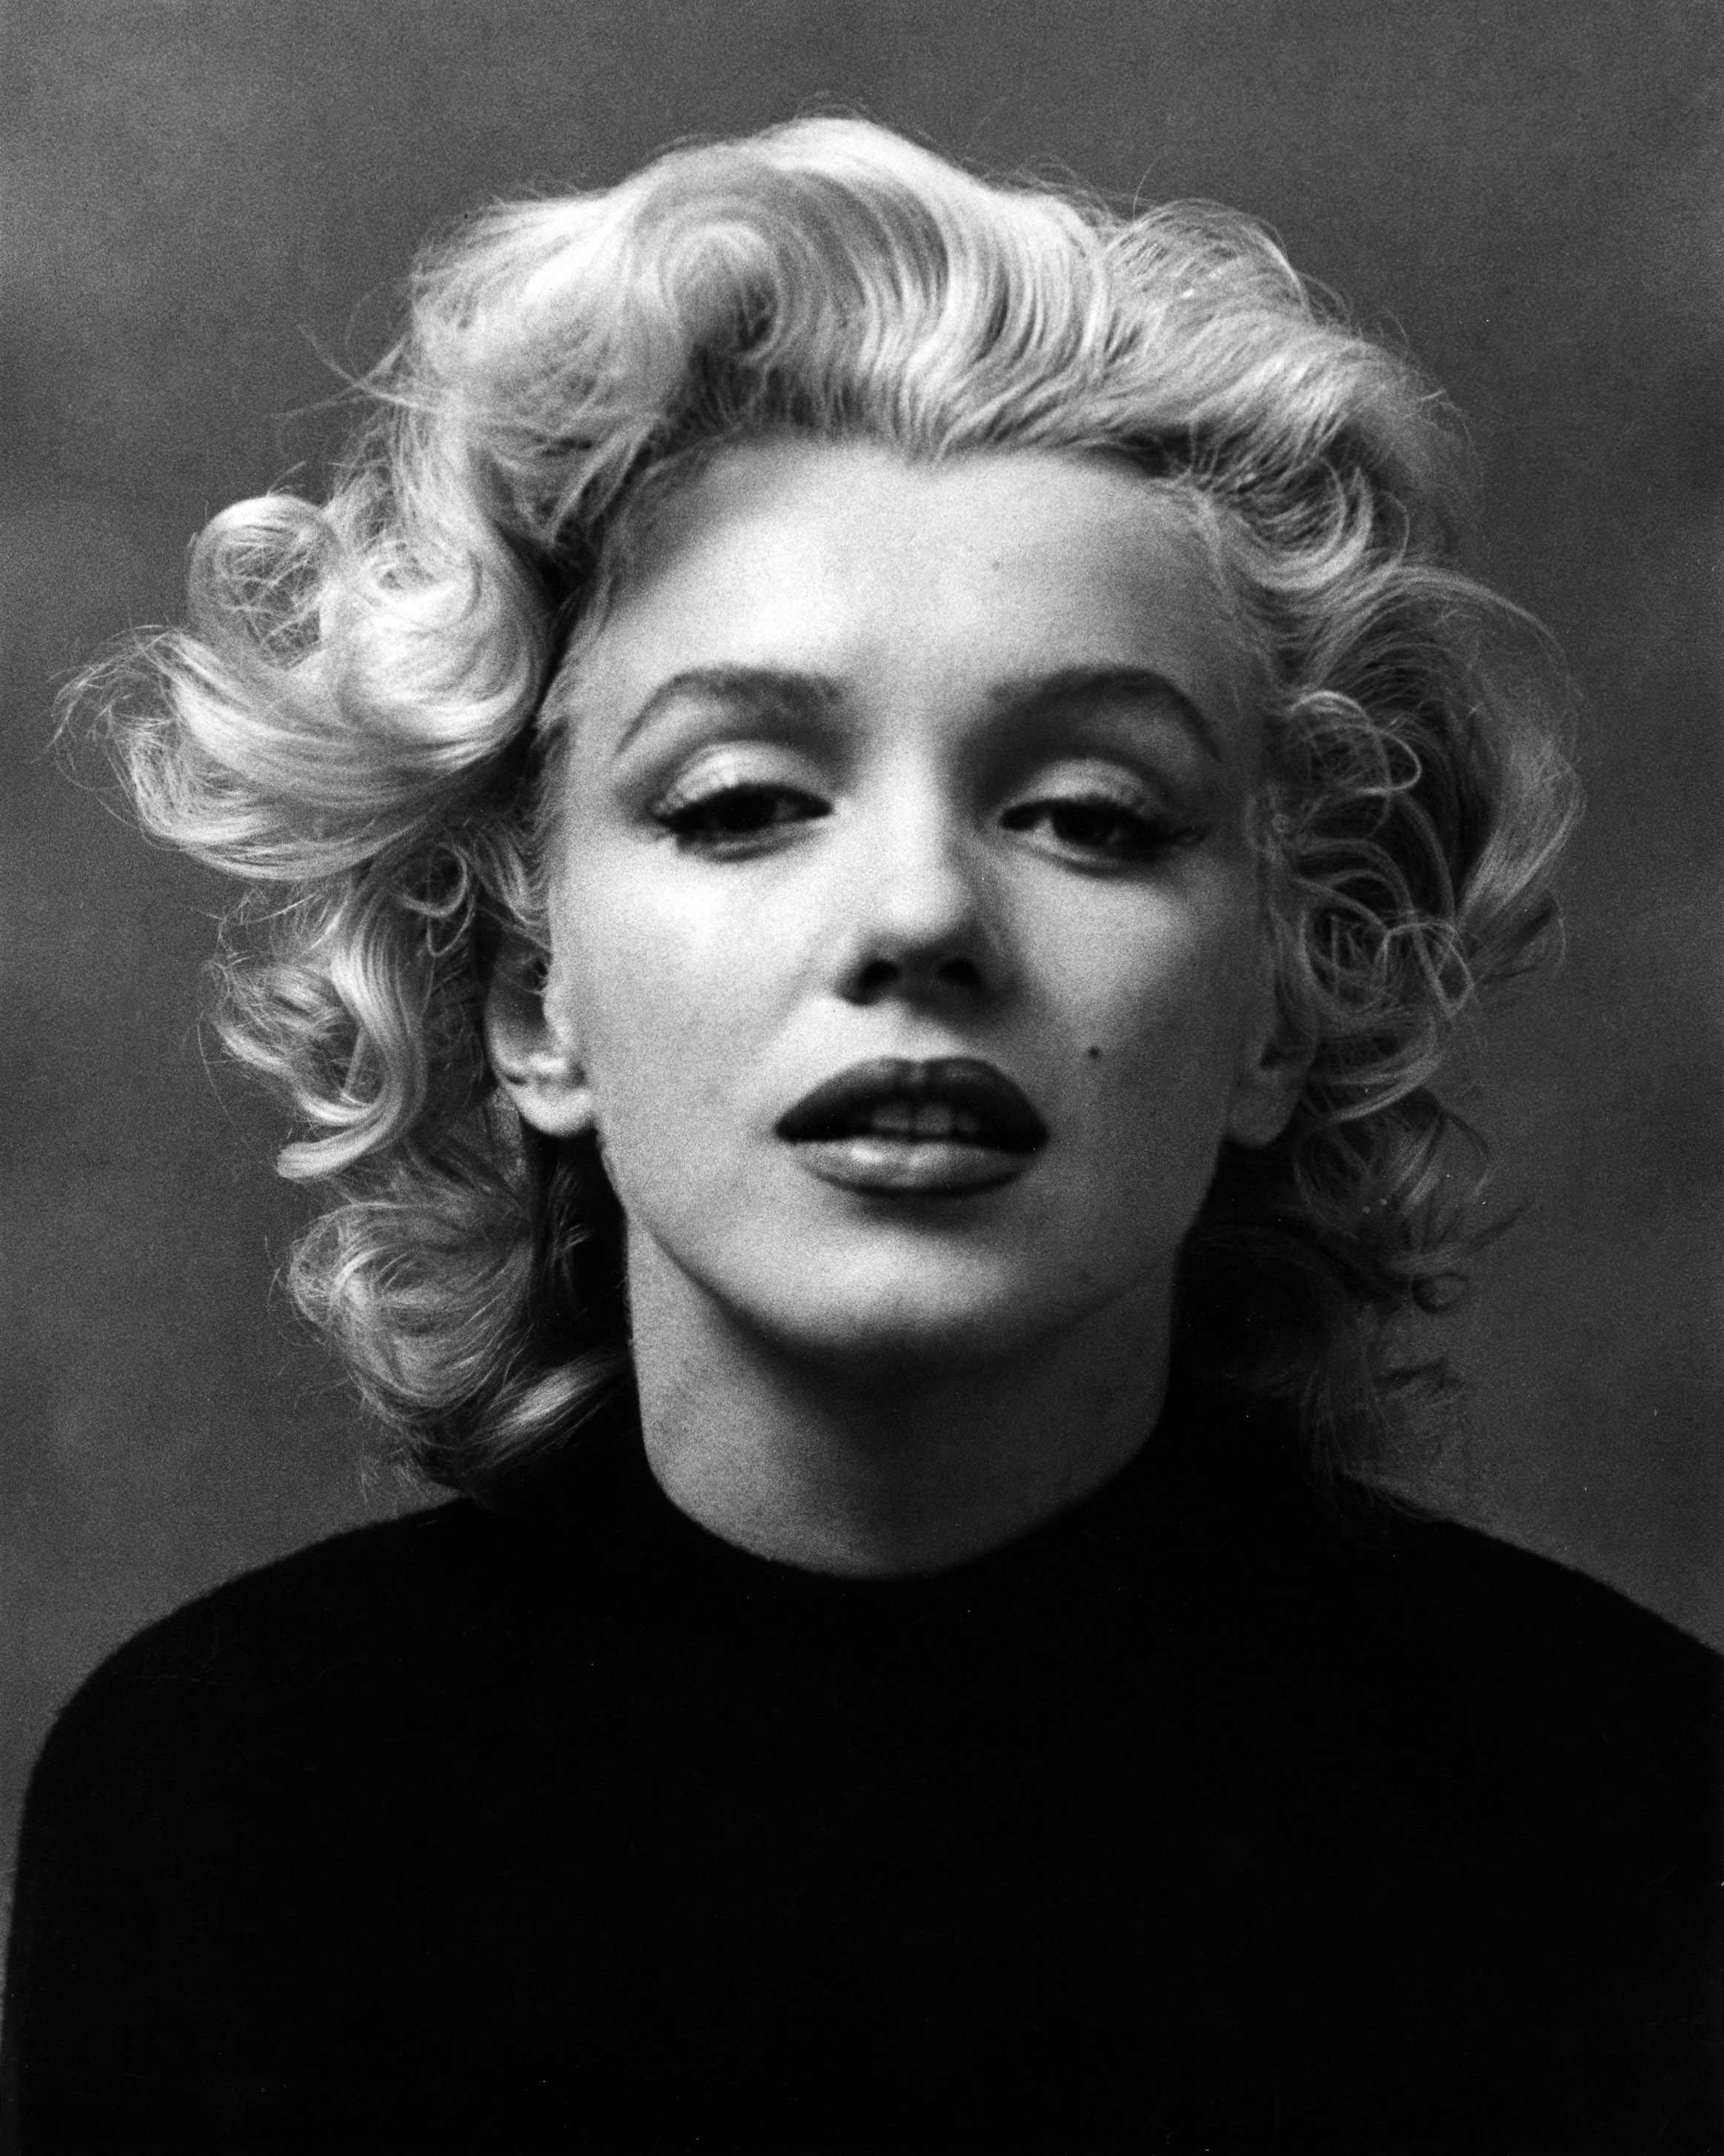 Arnold Newman Marilyn Monroe Images & Pictures - Becuo